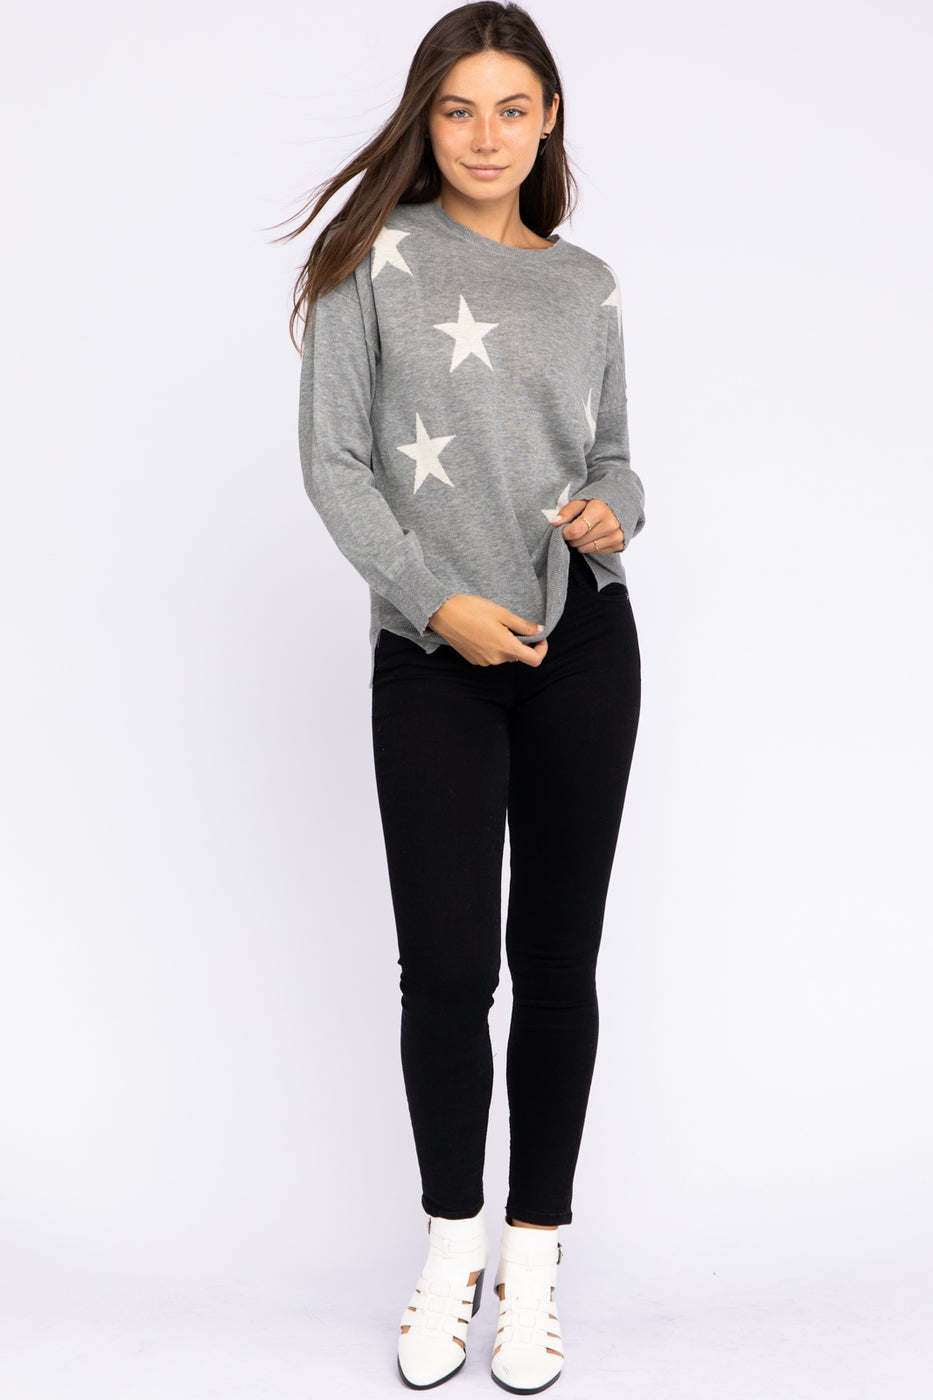 Light Weight Star Sweater In Grey Siin Bees